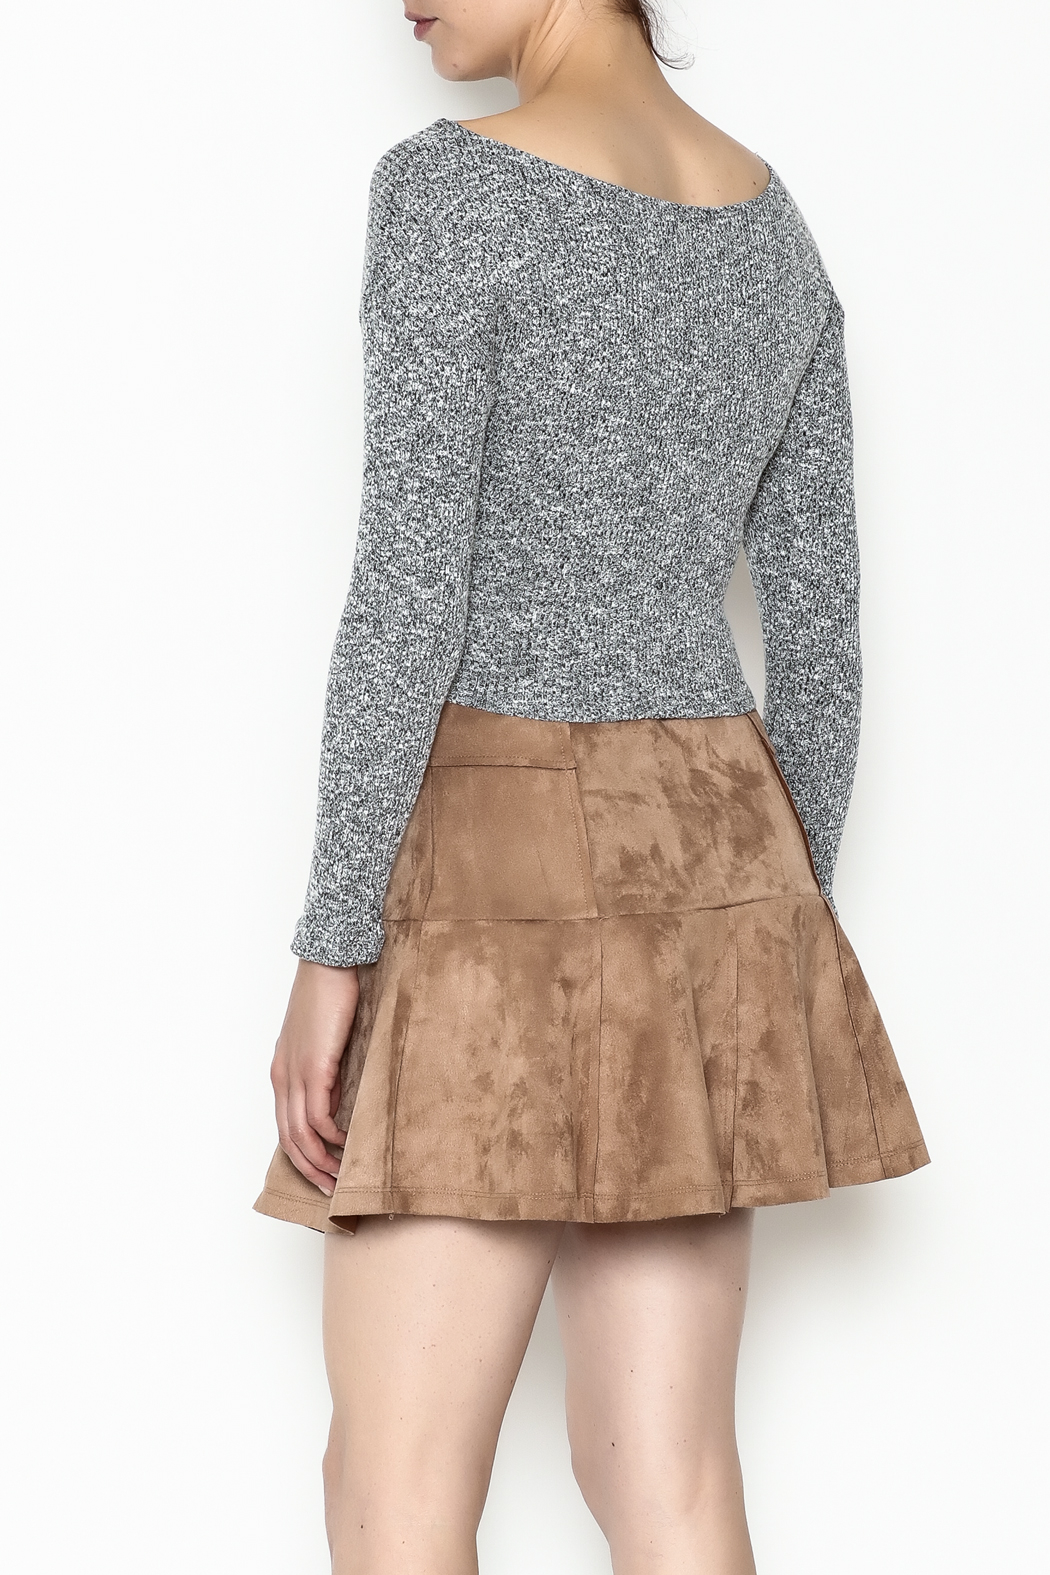 Better Be Long Sleeve Wrap Top - Back Cropped Image